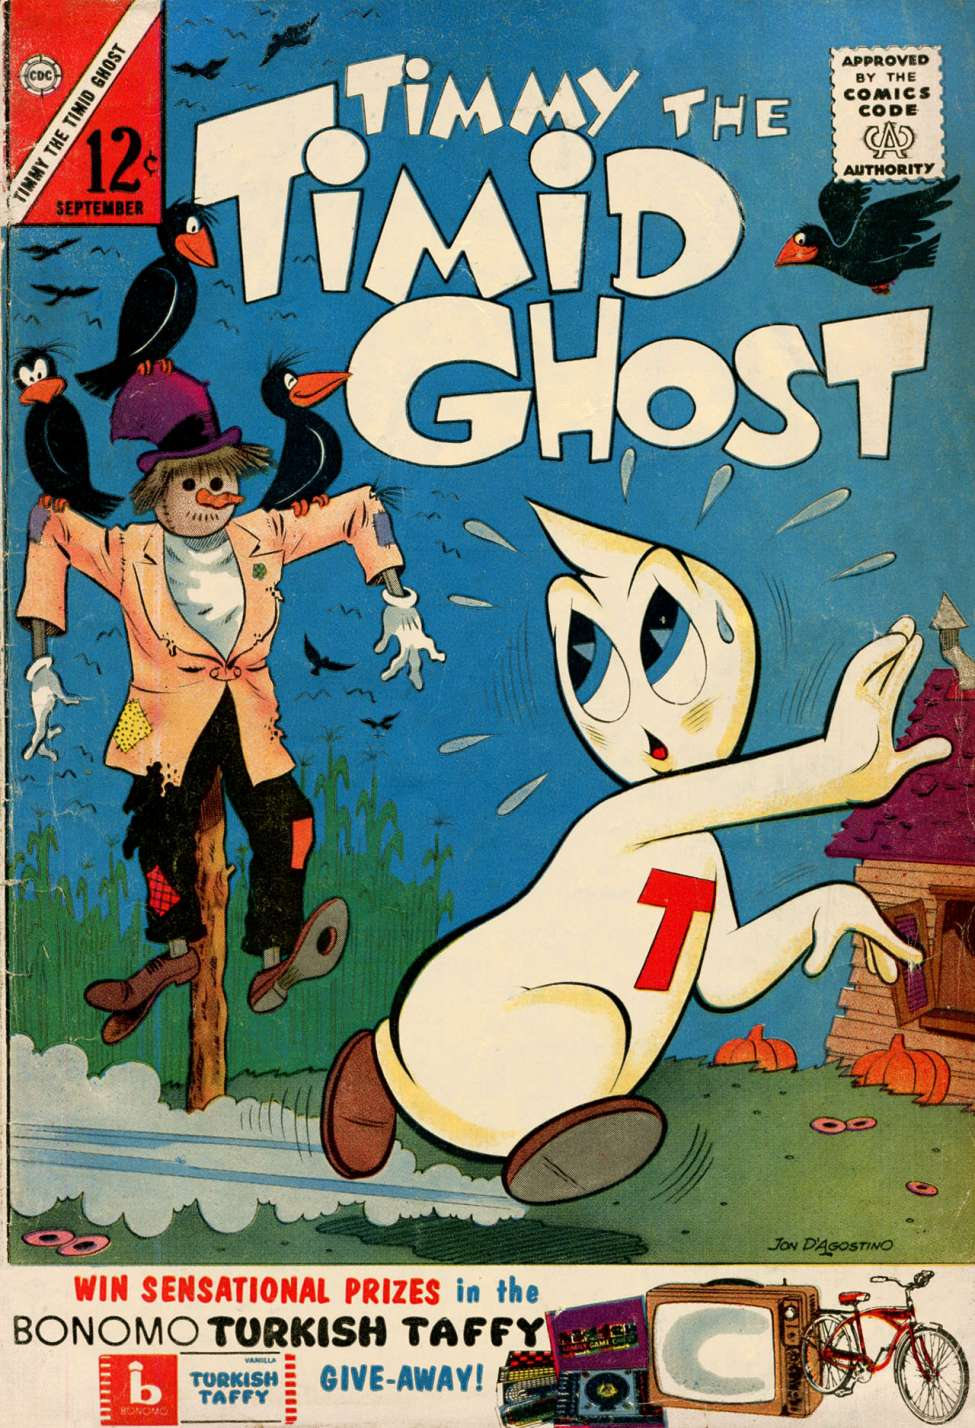 Comic Book Cover For Timmy the Timid Ghost #40